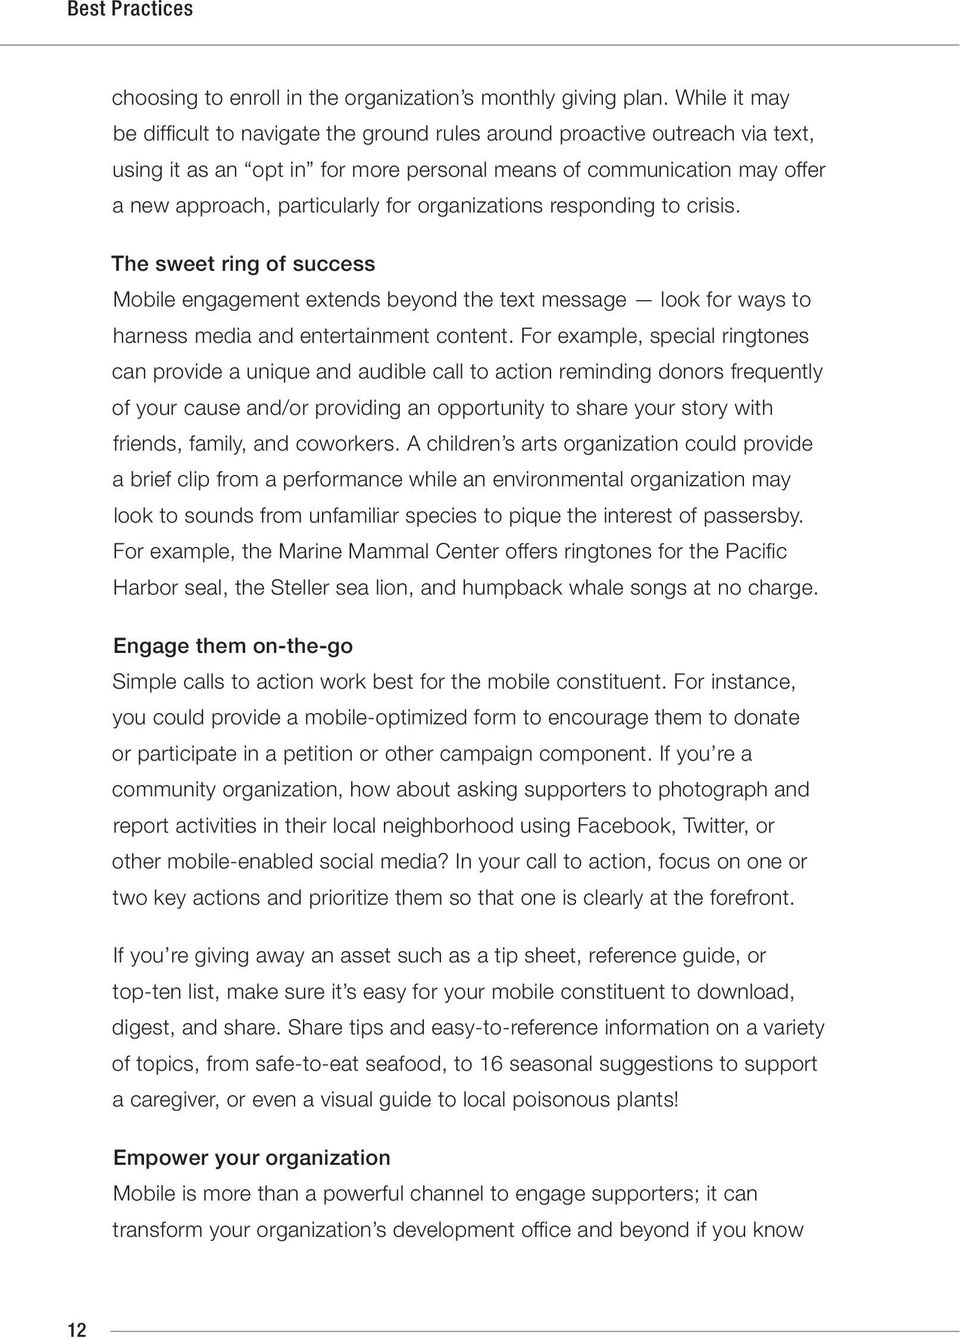 organizations responding to crisis. The sweet ring of success Mobile engagement extends beyond the text message look for ways to harness media and entertainment content.